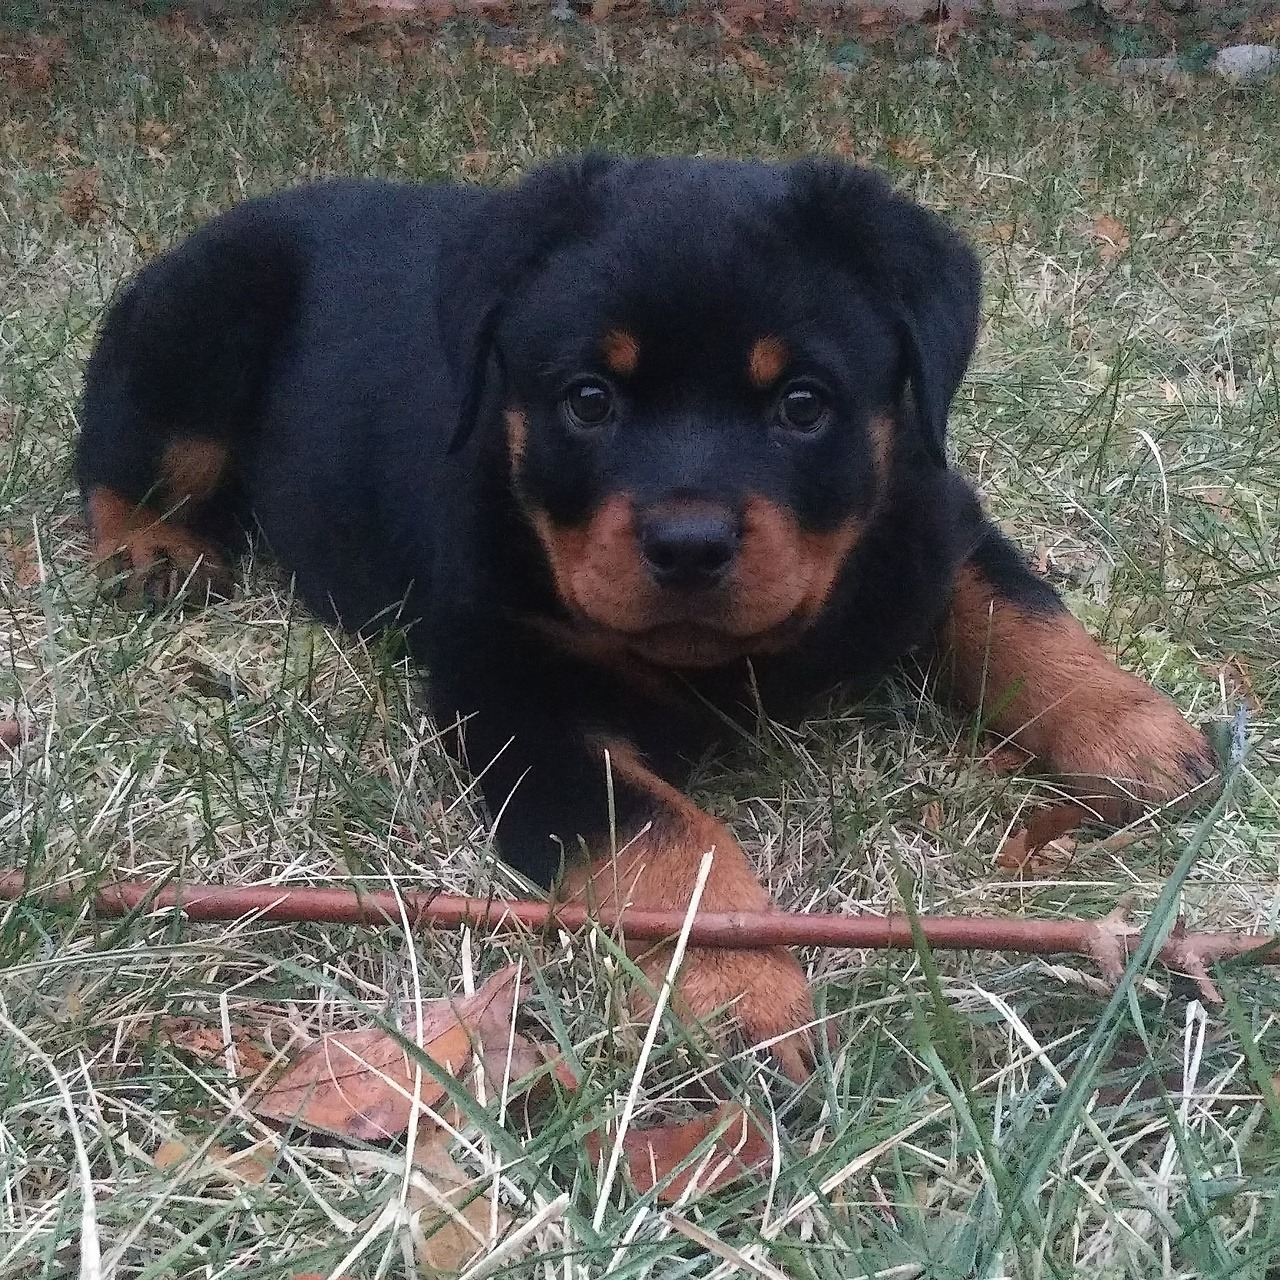 Rottweiler Puppy Http Puppiestotherescue Tumblr Com Post 169312109124 Discovered By Amy Melampy